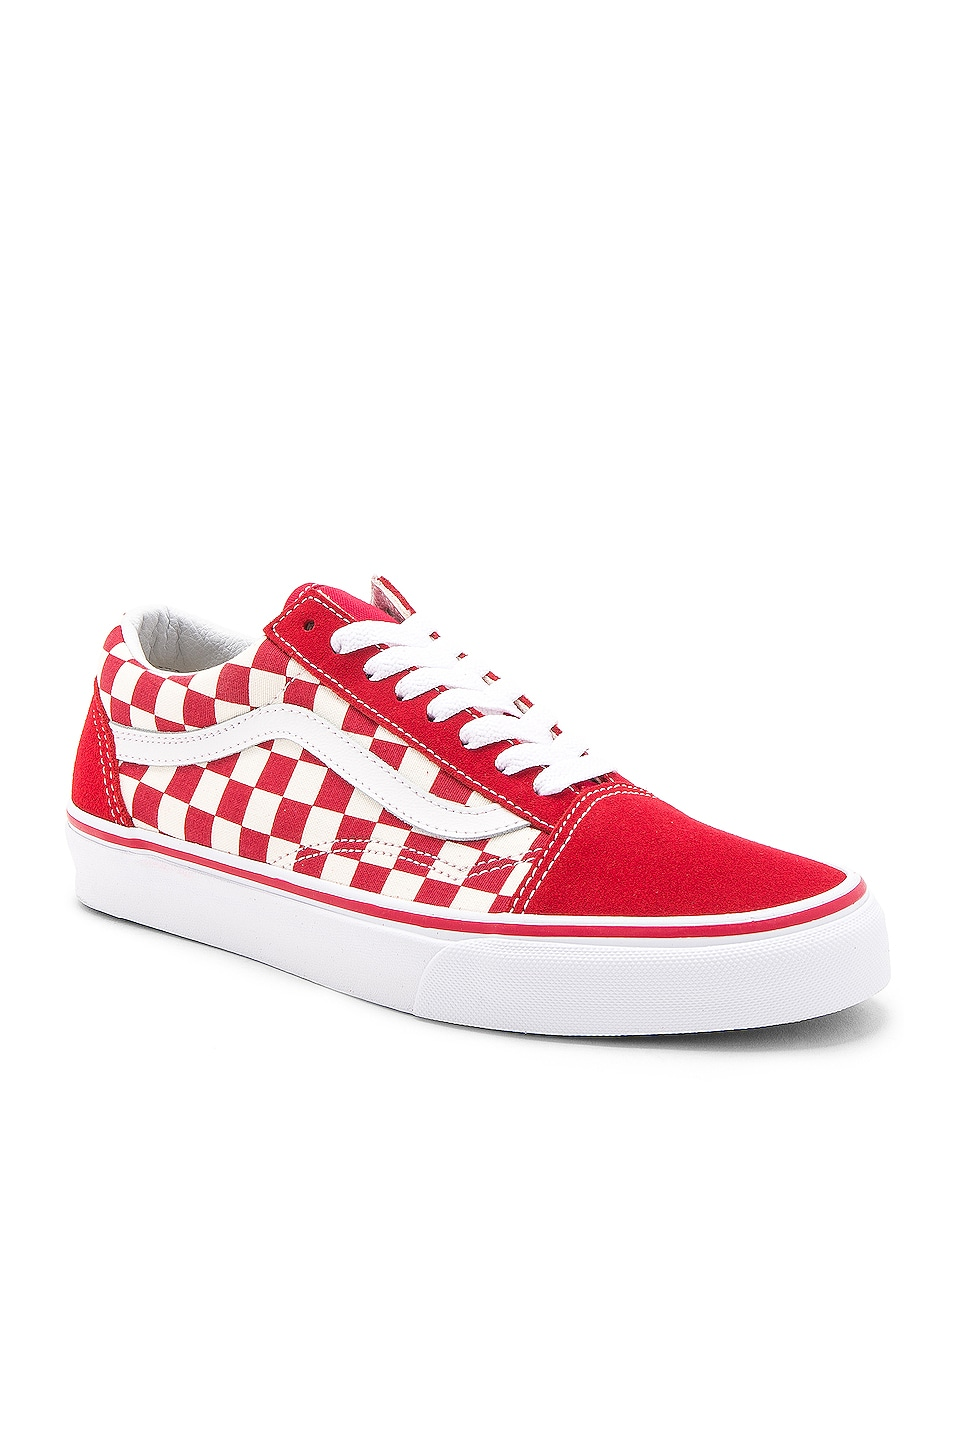 Vans Old Skool Checkboard in Racing Red & White